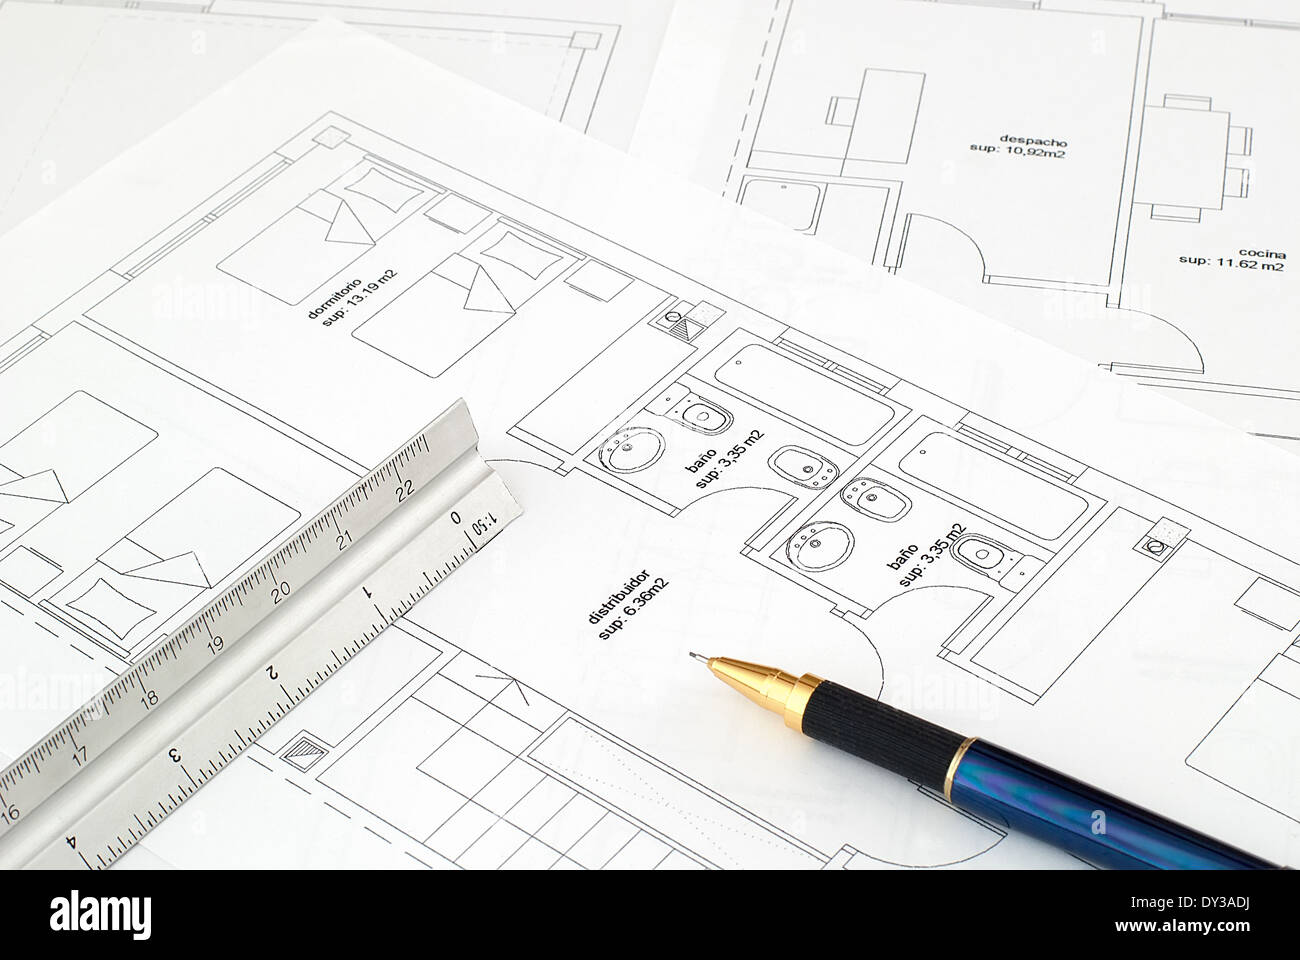 Backgrounds paperwork blueprint pencil stock photos backgrounds an architects workspace with tools penrulerscale and blueprint stock image malvernweather Gallery